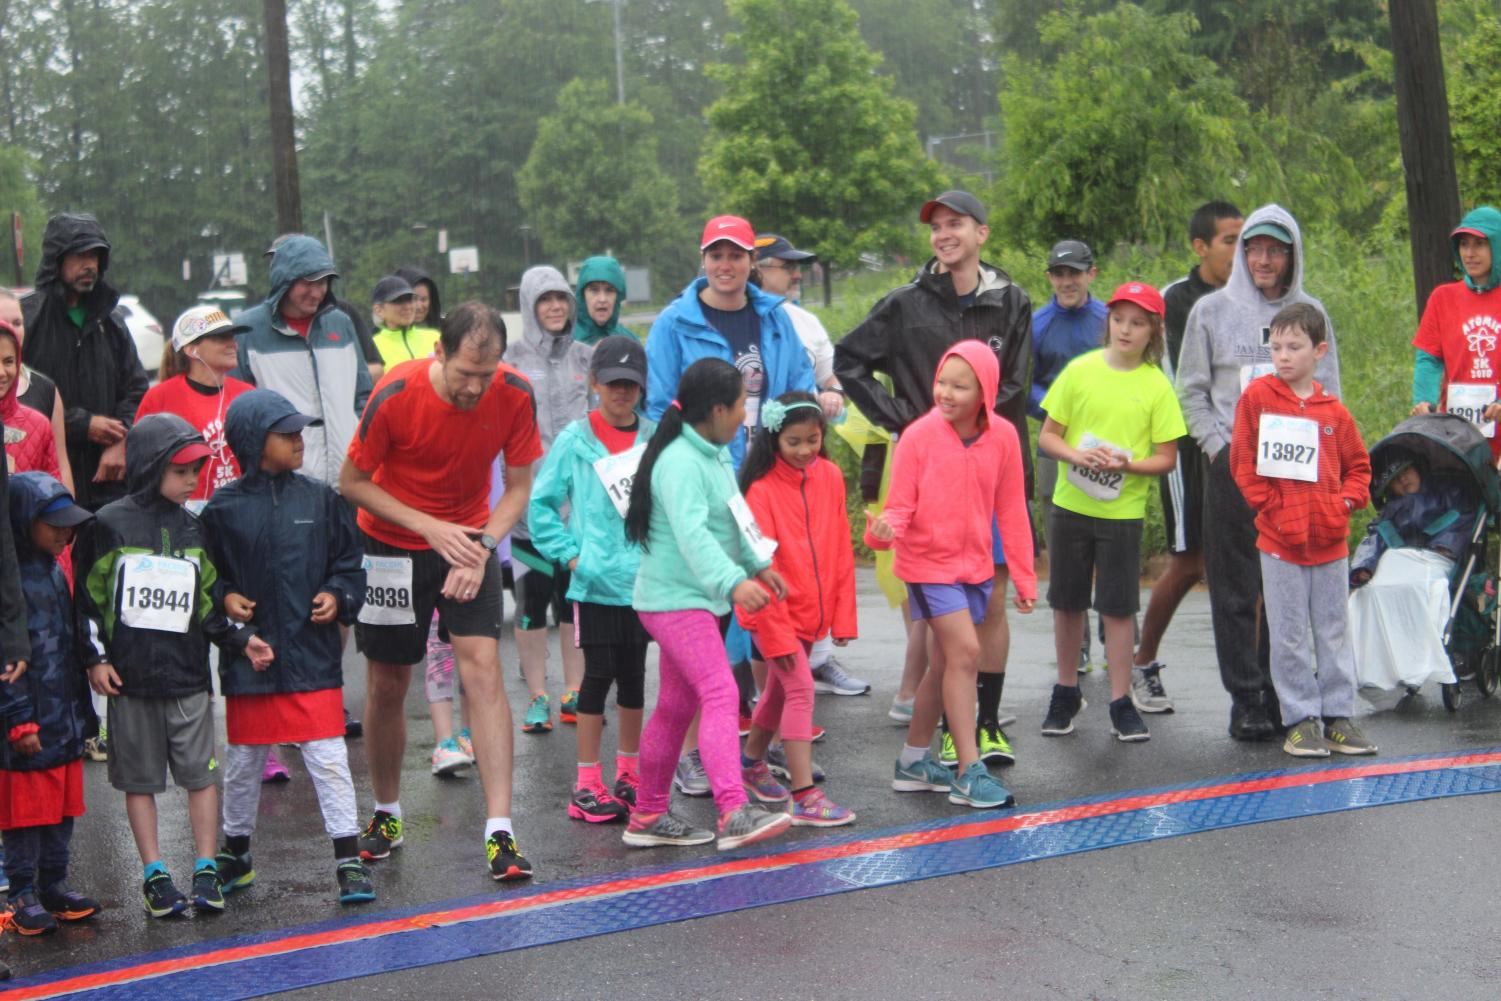 About 50 participants lined up in the rain at the starting line in the annual Atoms 5K race. The first place runner crossed the finish line at about 17 minutes.